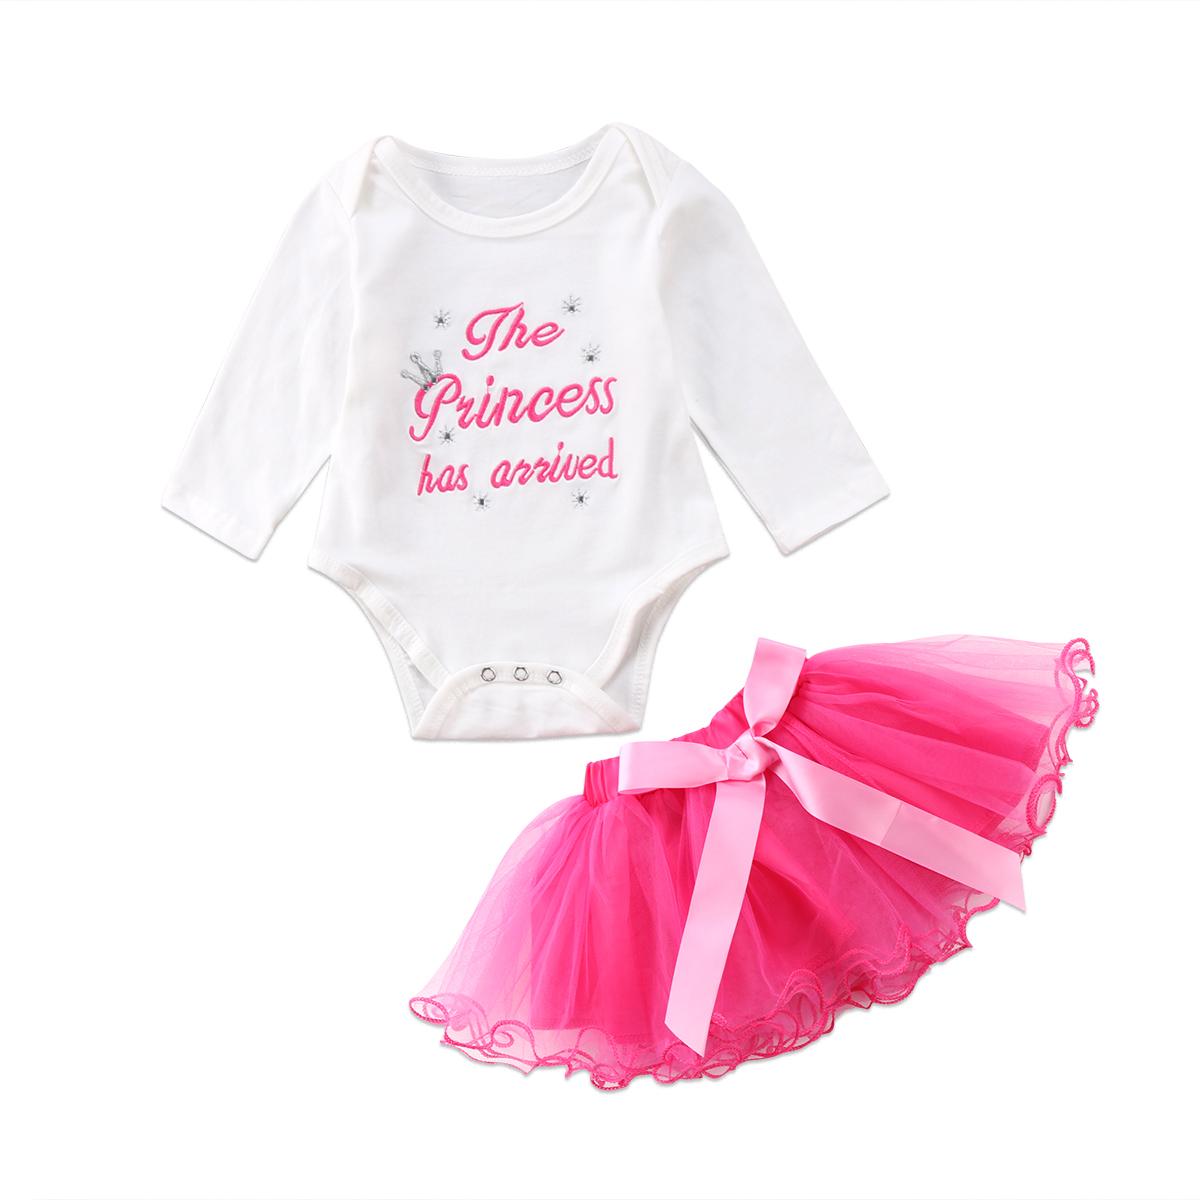 2pcs Princess Baby Girl Skirt Suit Kids Girls Clothes Newborn Letter Baby Romper Lace Tulle Ball Gown Skirts Bowknot Outfit Sets